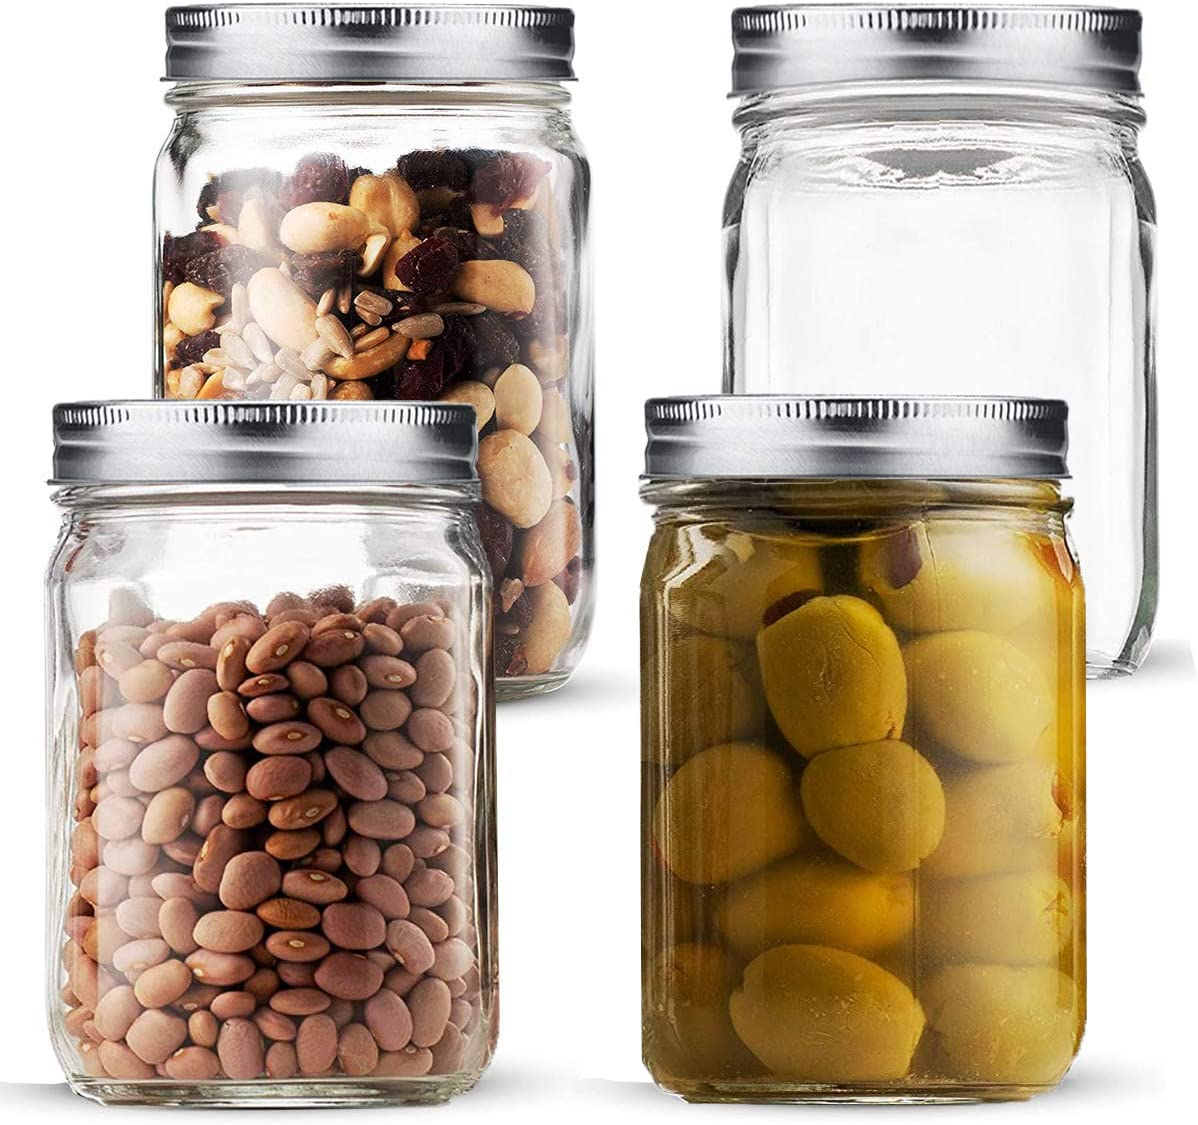 32 oz Mason Jars Wide Mouth with Airtight Lids, Canning Jar Glass for Food Storage, Canning, Pickling, Fermenting Fruits and Vegetables Slices (4 Pack)